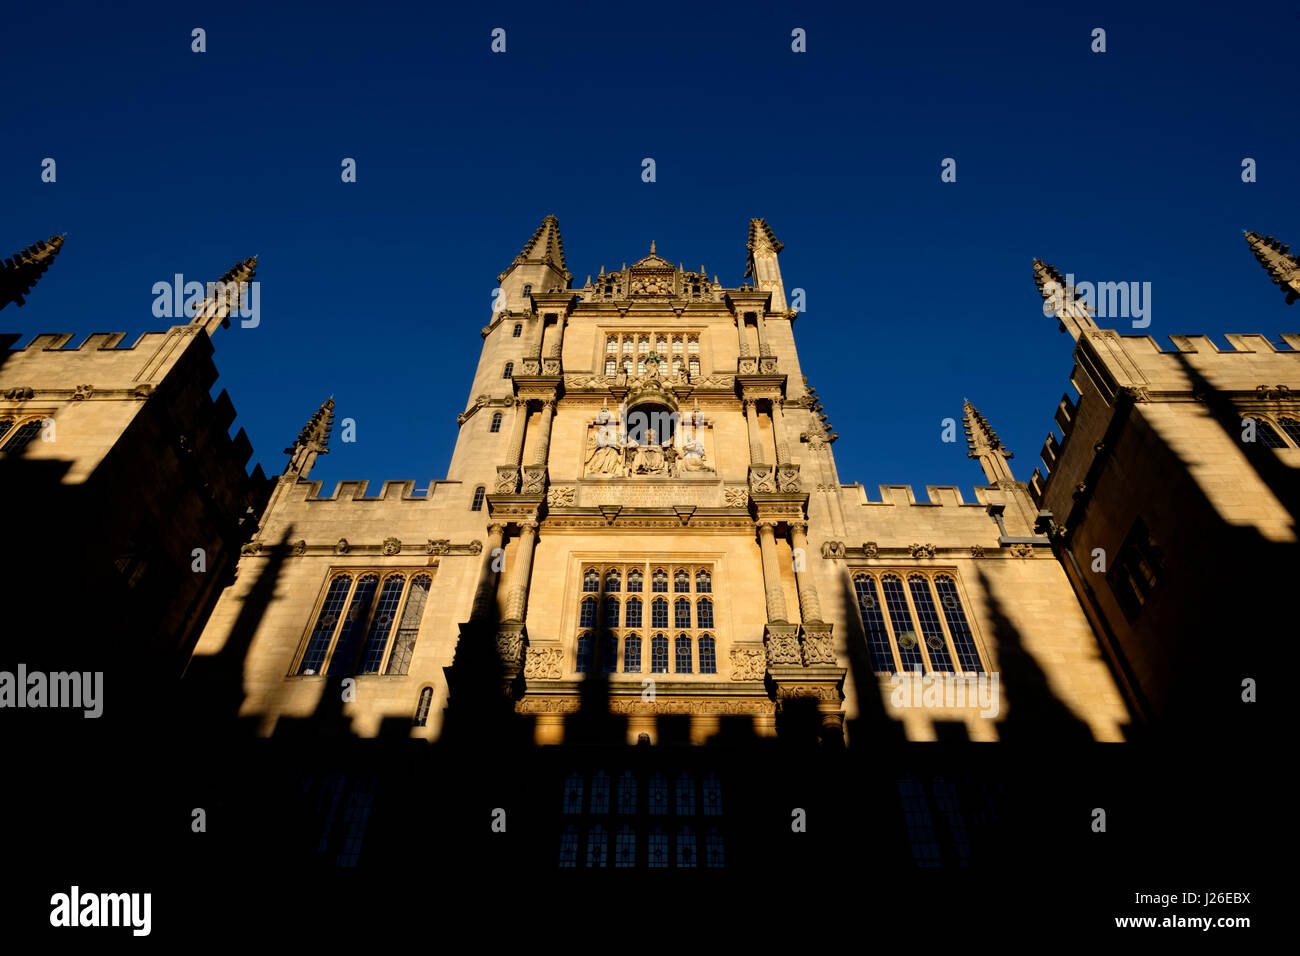 Tower of Five Orders at Bodleian Library, Oxford, Oxfordshire, England, United Kingdom - Stock Image